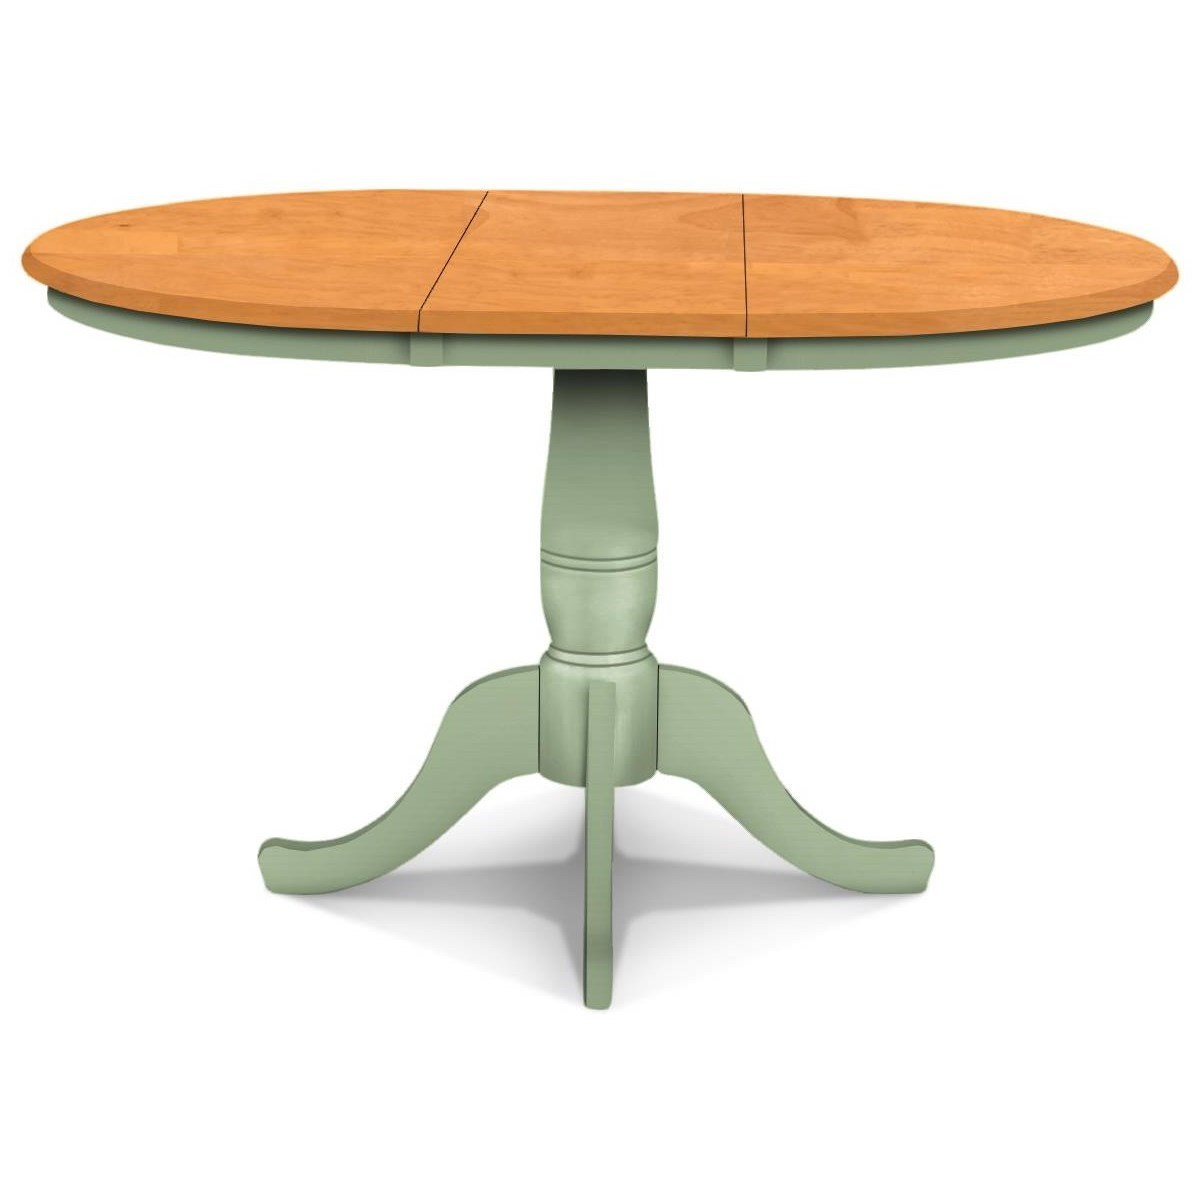 at standard 30   height     john thomas select dining adjustable height round pedestal table      rh   baers com